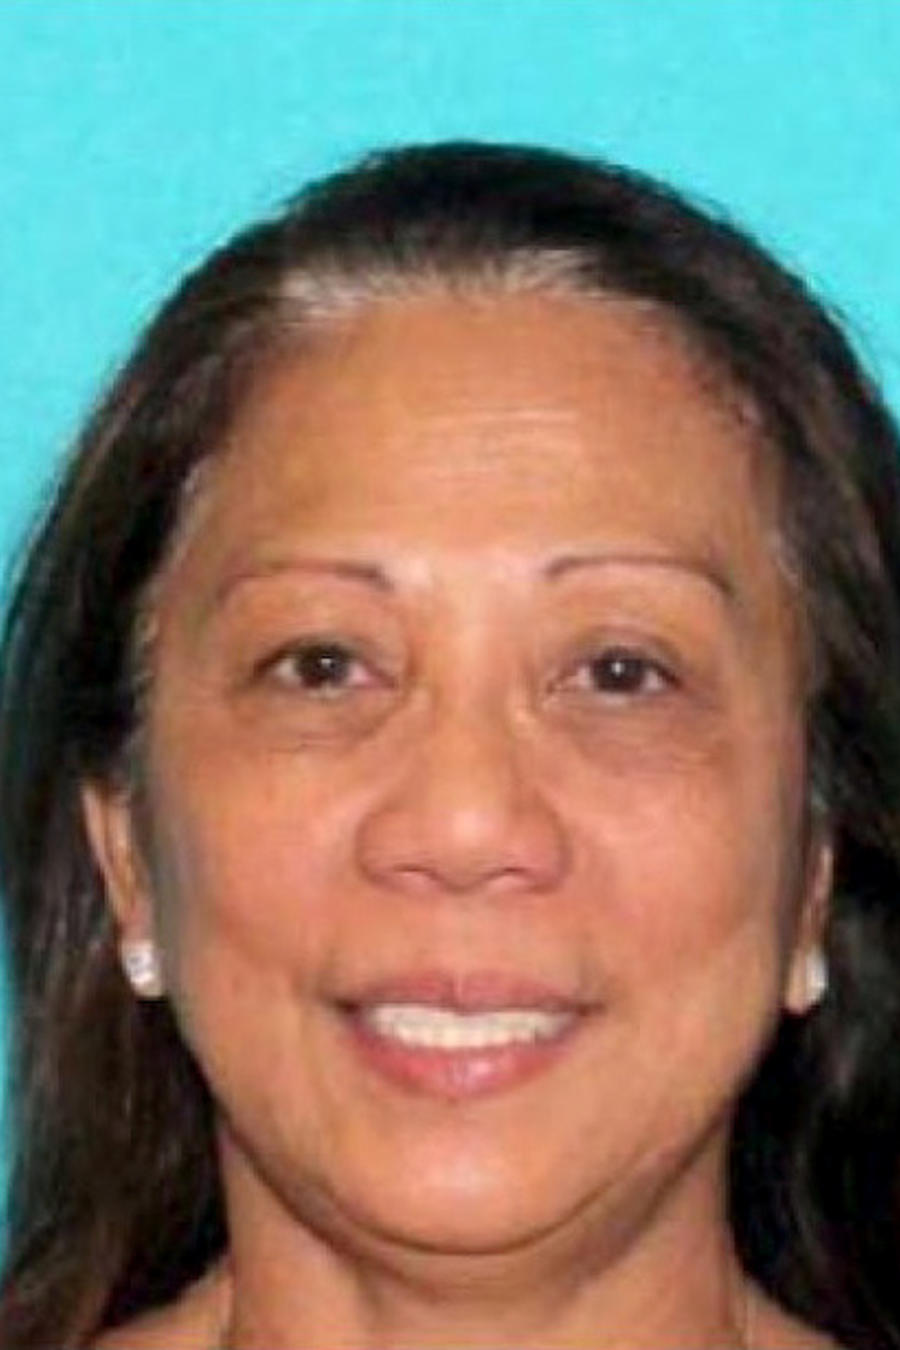 Image released by the Las Vegas Metropolitan Police Department of Marilou Danley in connection to a shooting at the Route 91 Harvest Music Festival in Las Vegas